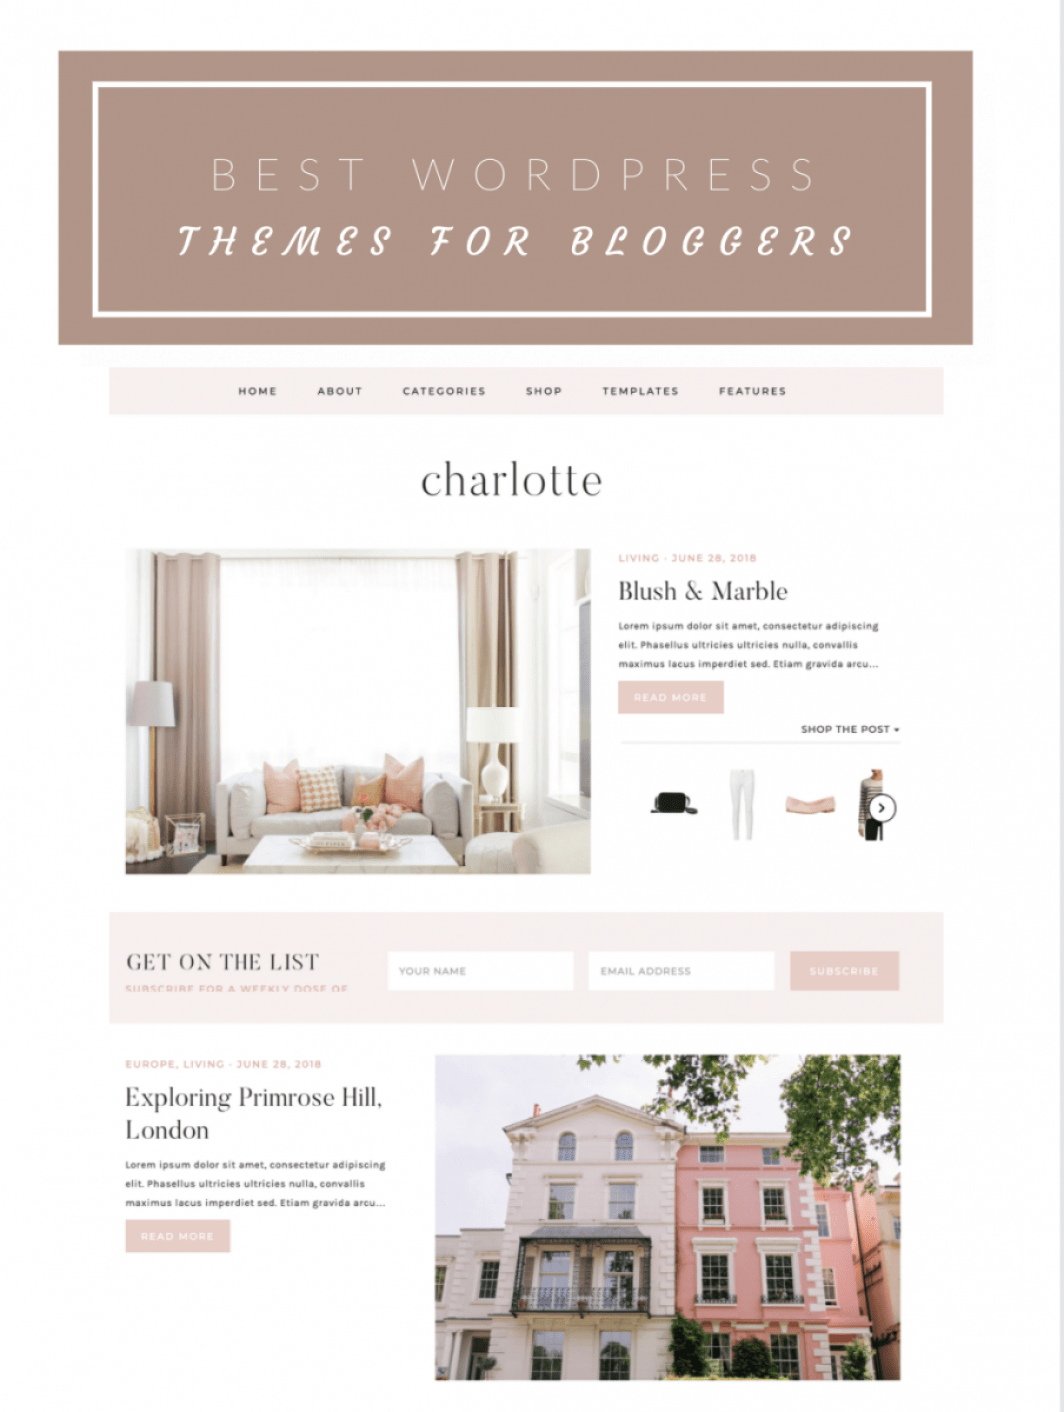 Best WordPress Themes for Fashion Bloggers